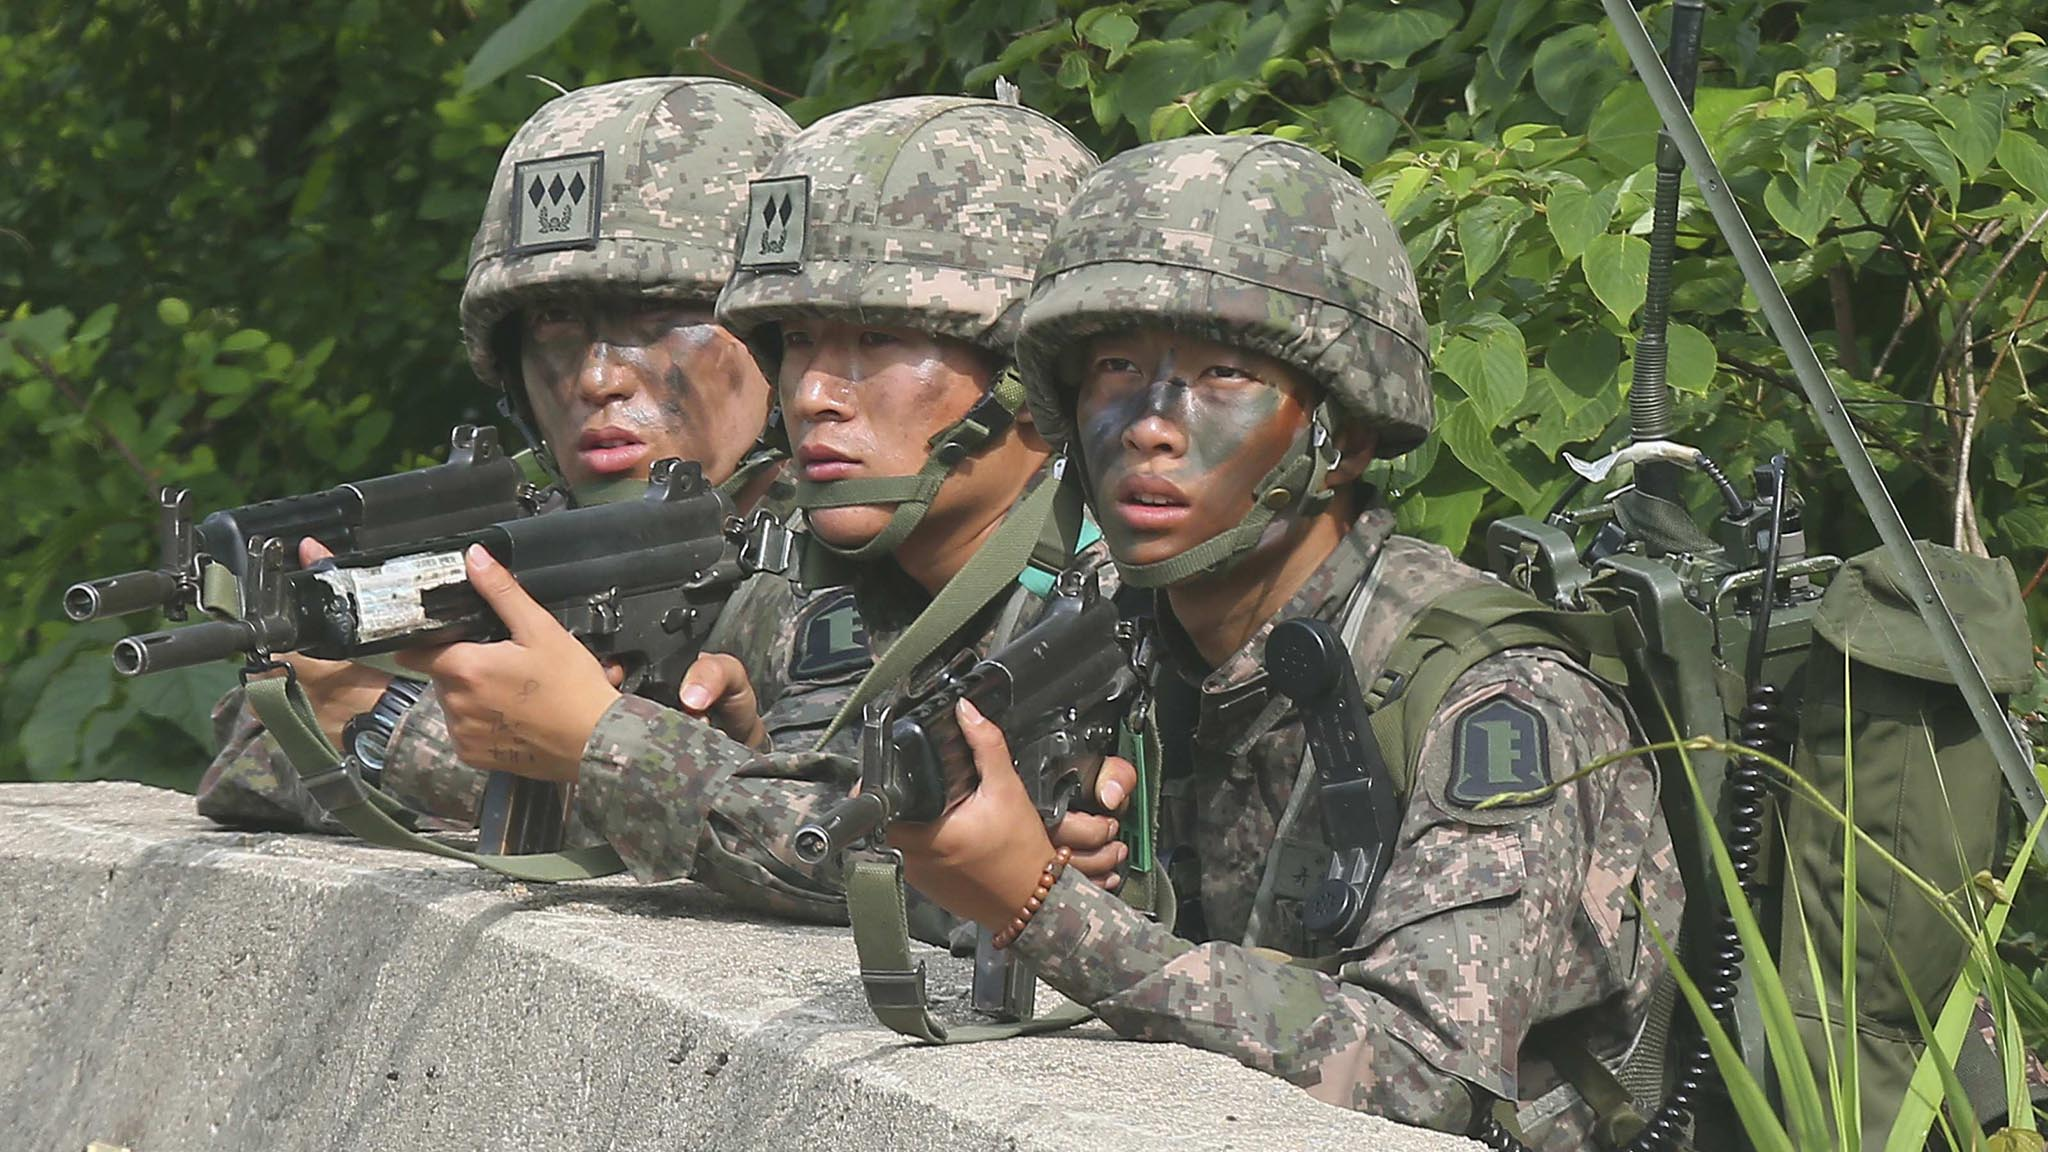 South Korean soldiers take position during a search and arrest operation as troops standoff with a conscript soldier in Goseong